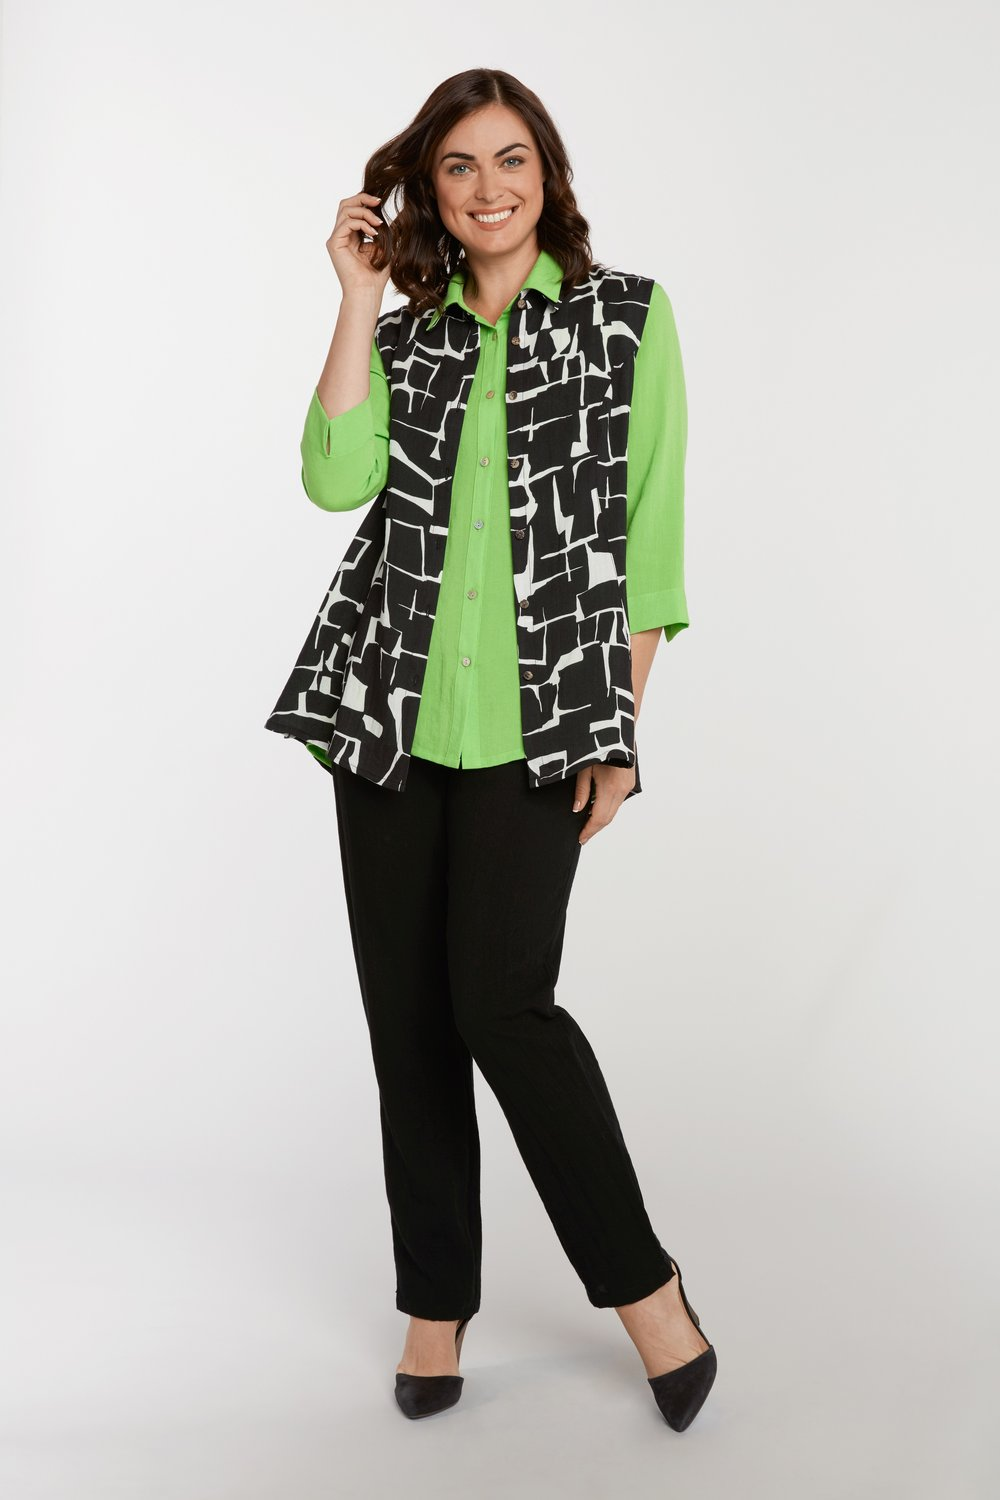 AA223 - Betty Button-Up Vest & AA224 - Veronica Button-Up Blouse    Crackle - CL9238 & Bali - CL2566